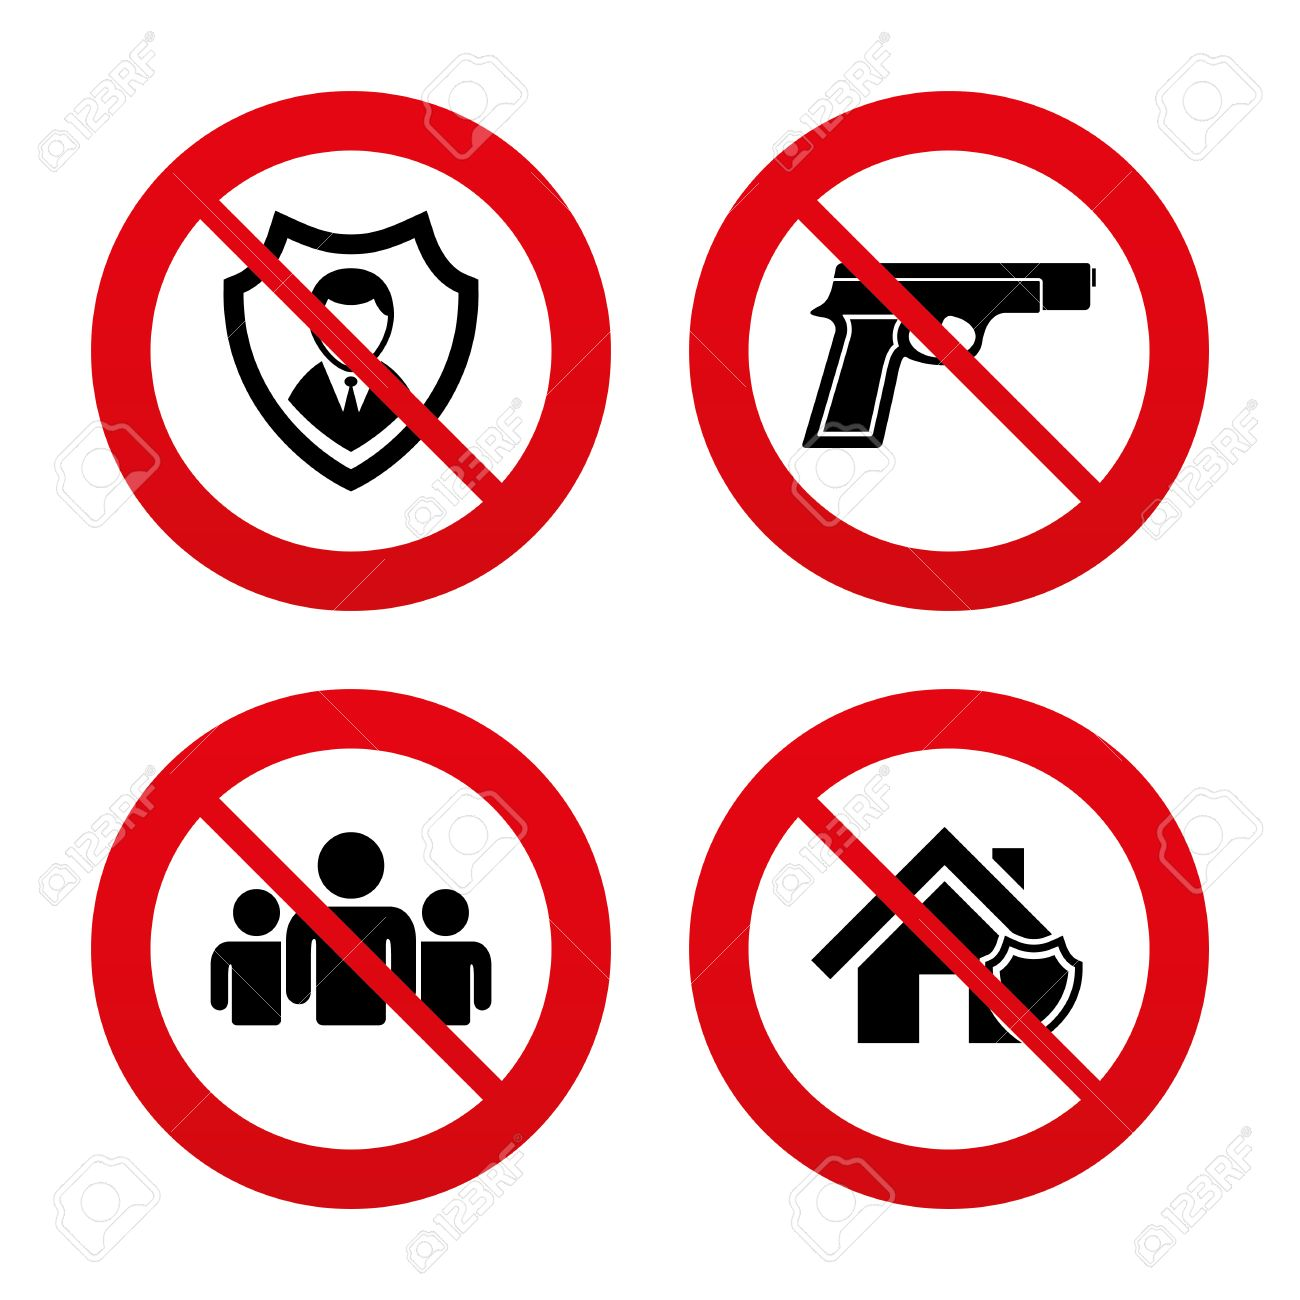 No ban or stop signs security agency icons home shield protection no ban or stop signs security agency icons home shield protection symbols biocorpaavc Images